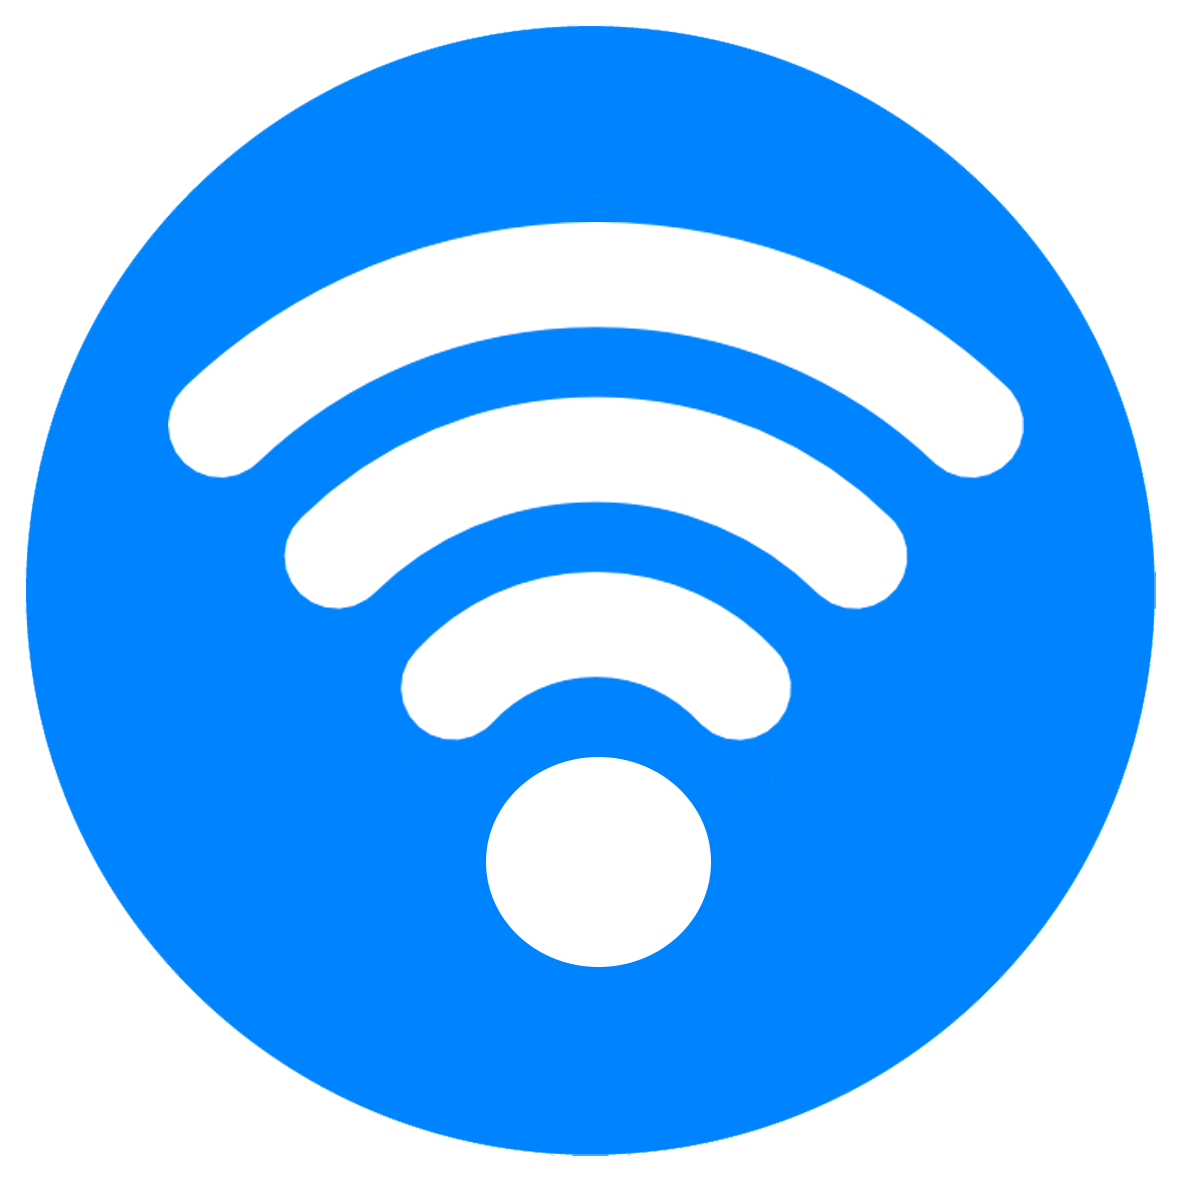 Wifi icon png. Dstv introduces wi fi